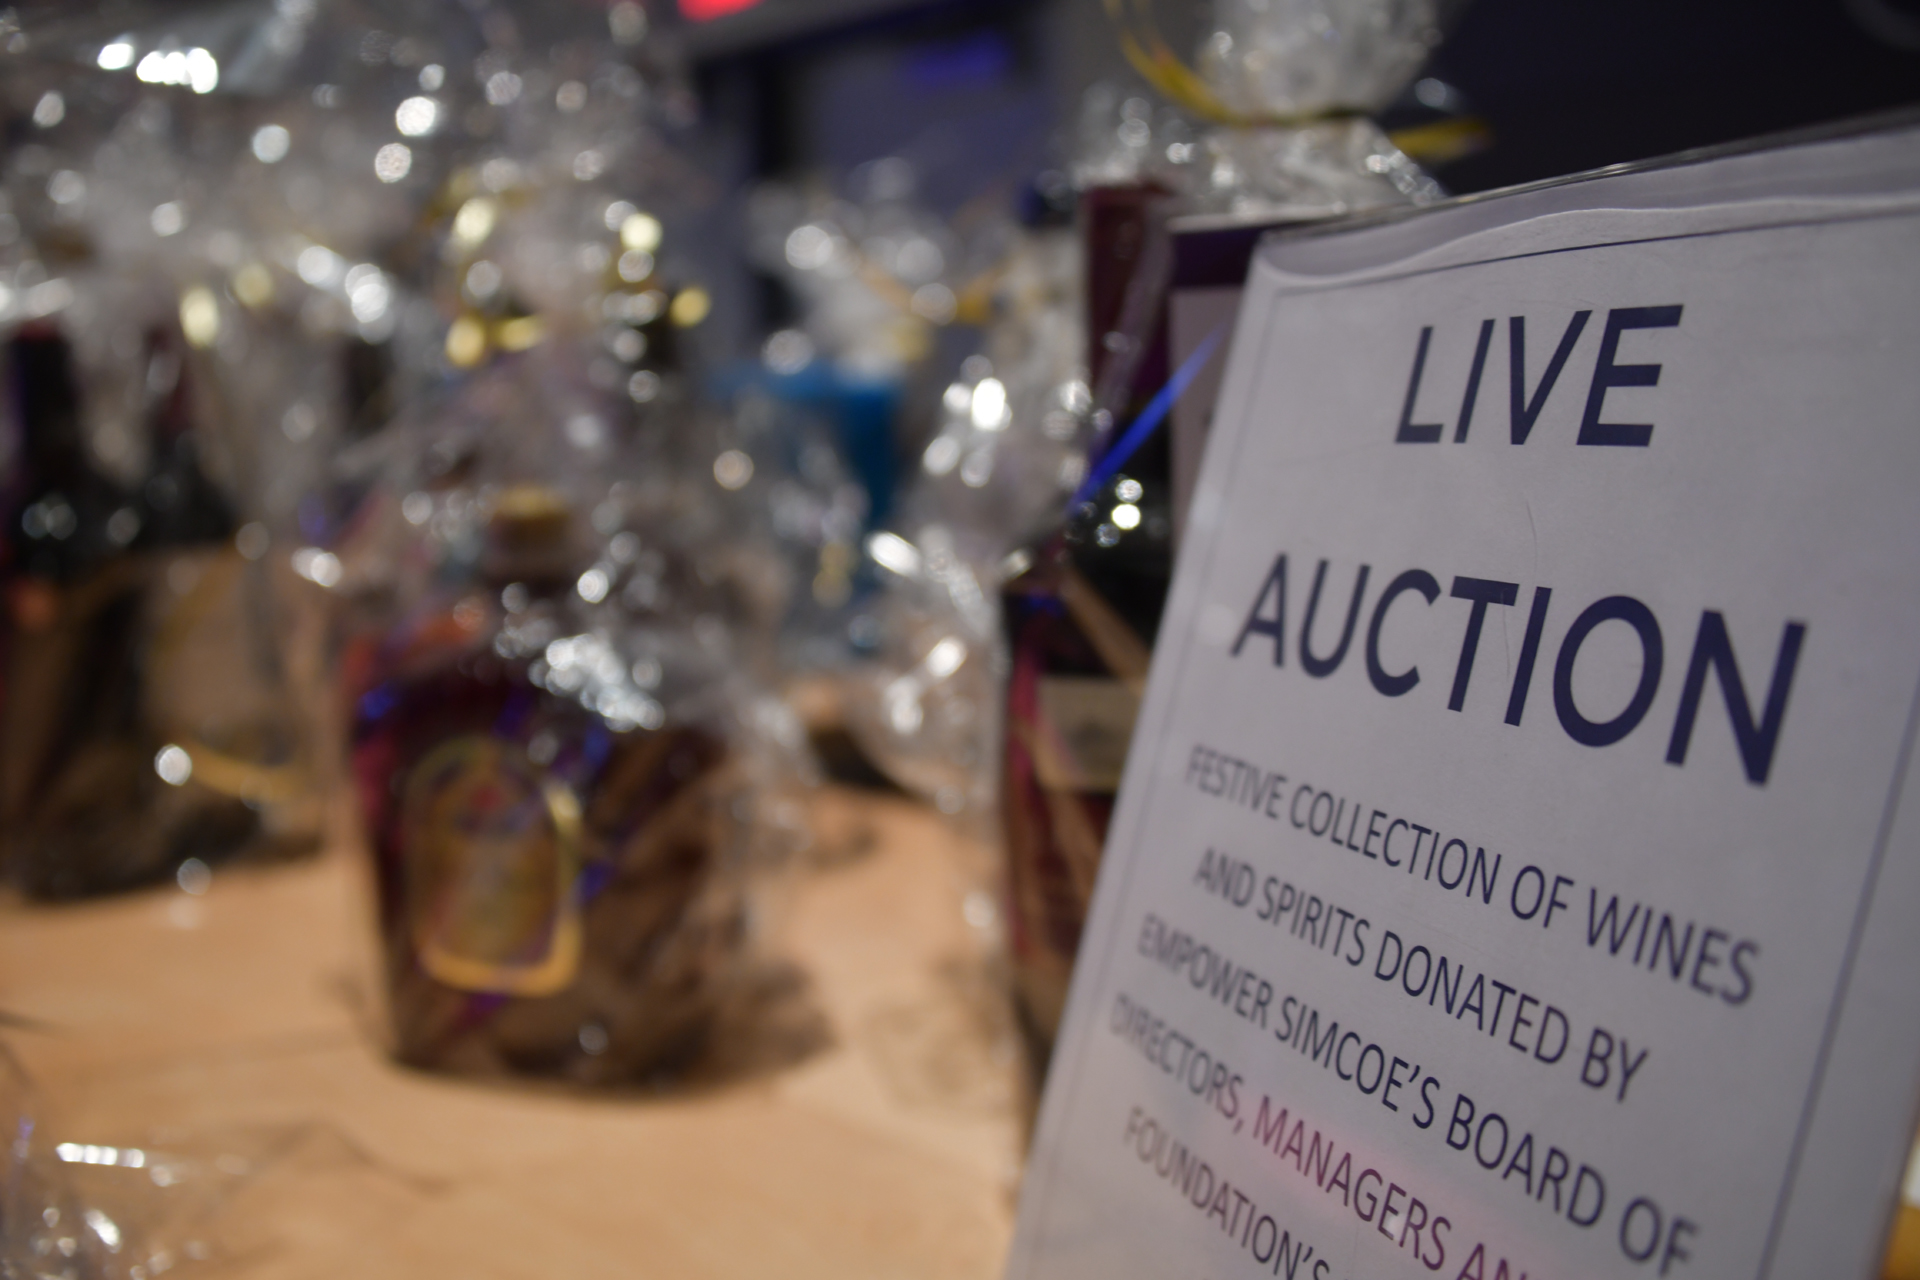 2019 Fashion Show Live Auction